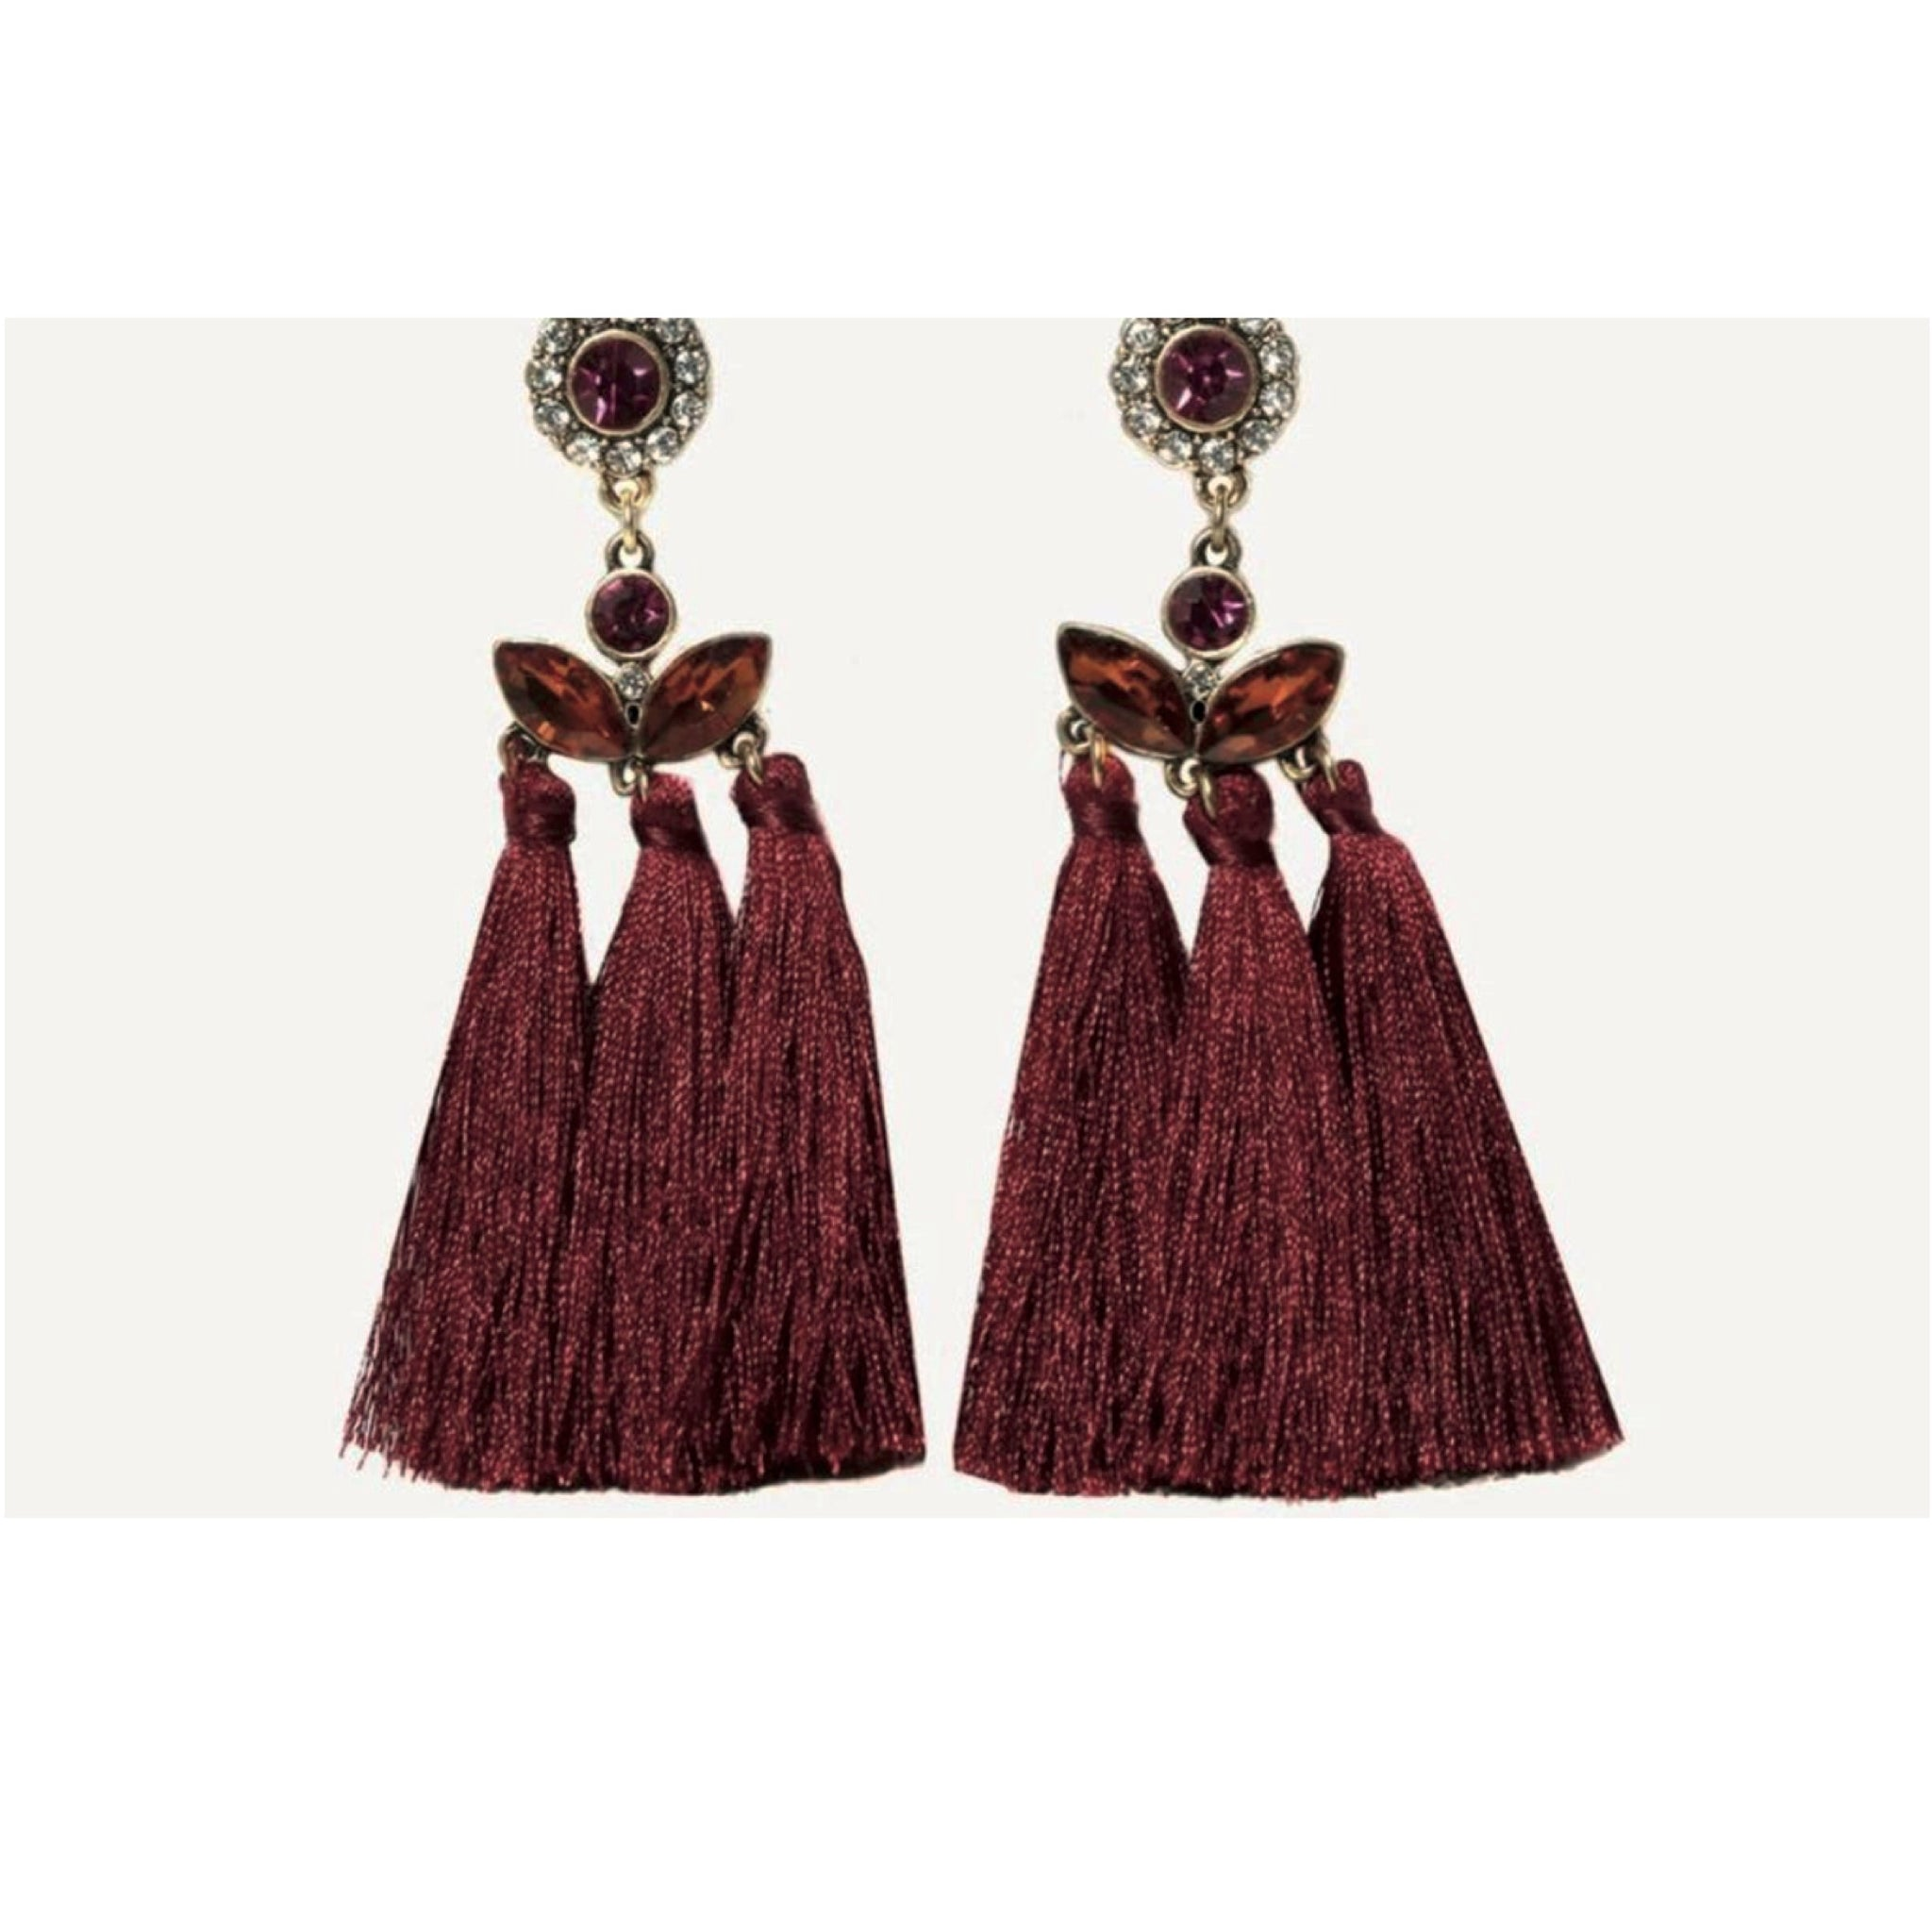 Scarlet Ornate Jewel Tassel Earring